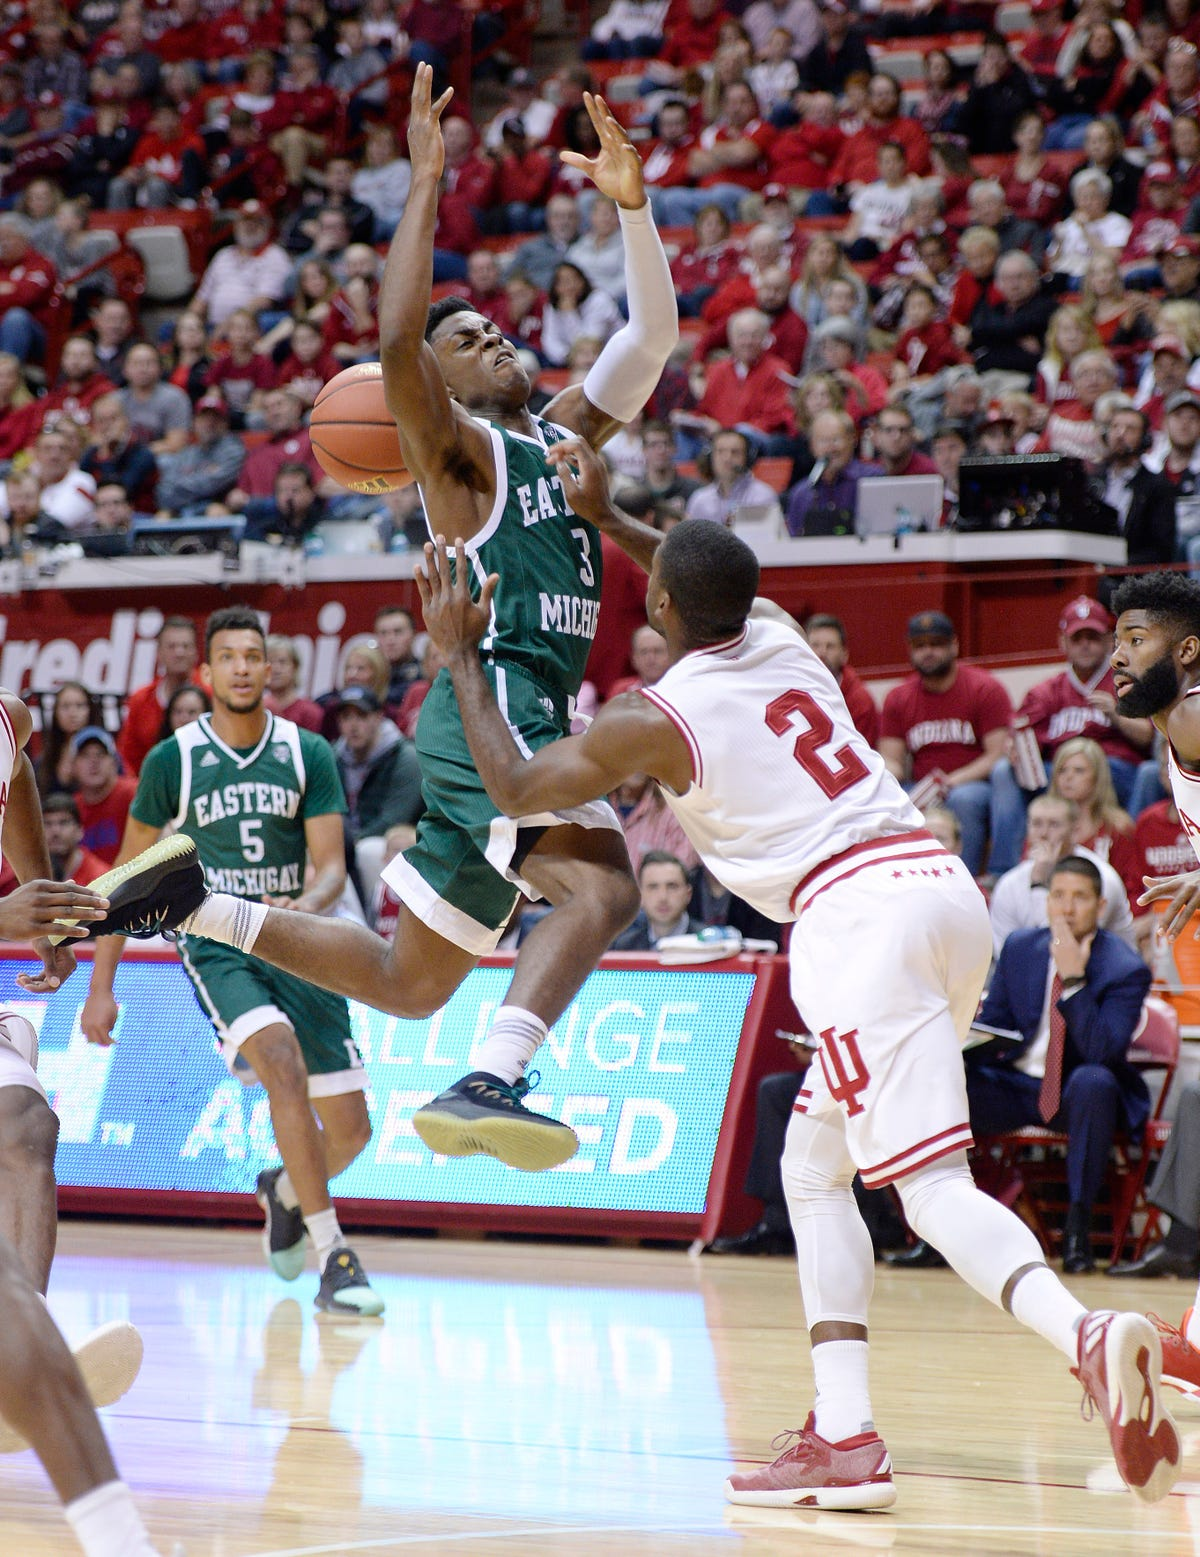 Indiana wins third straight with 87-67 win over EMU